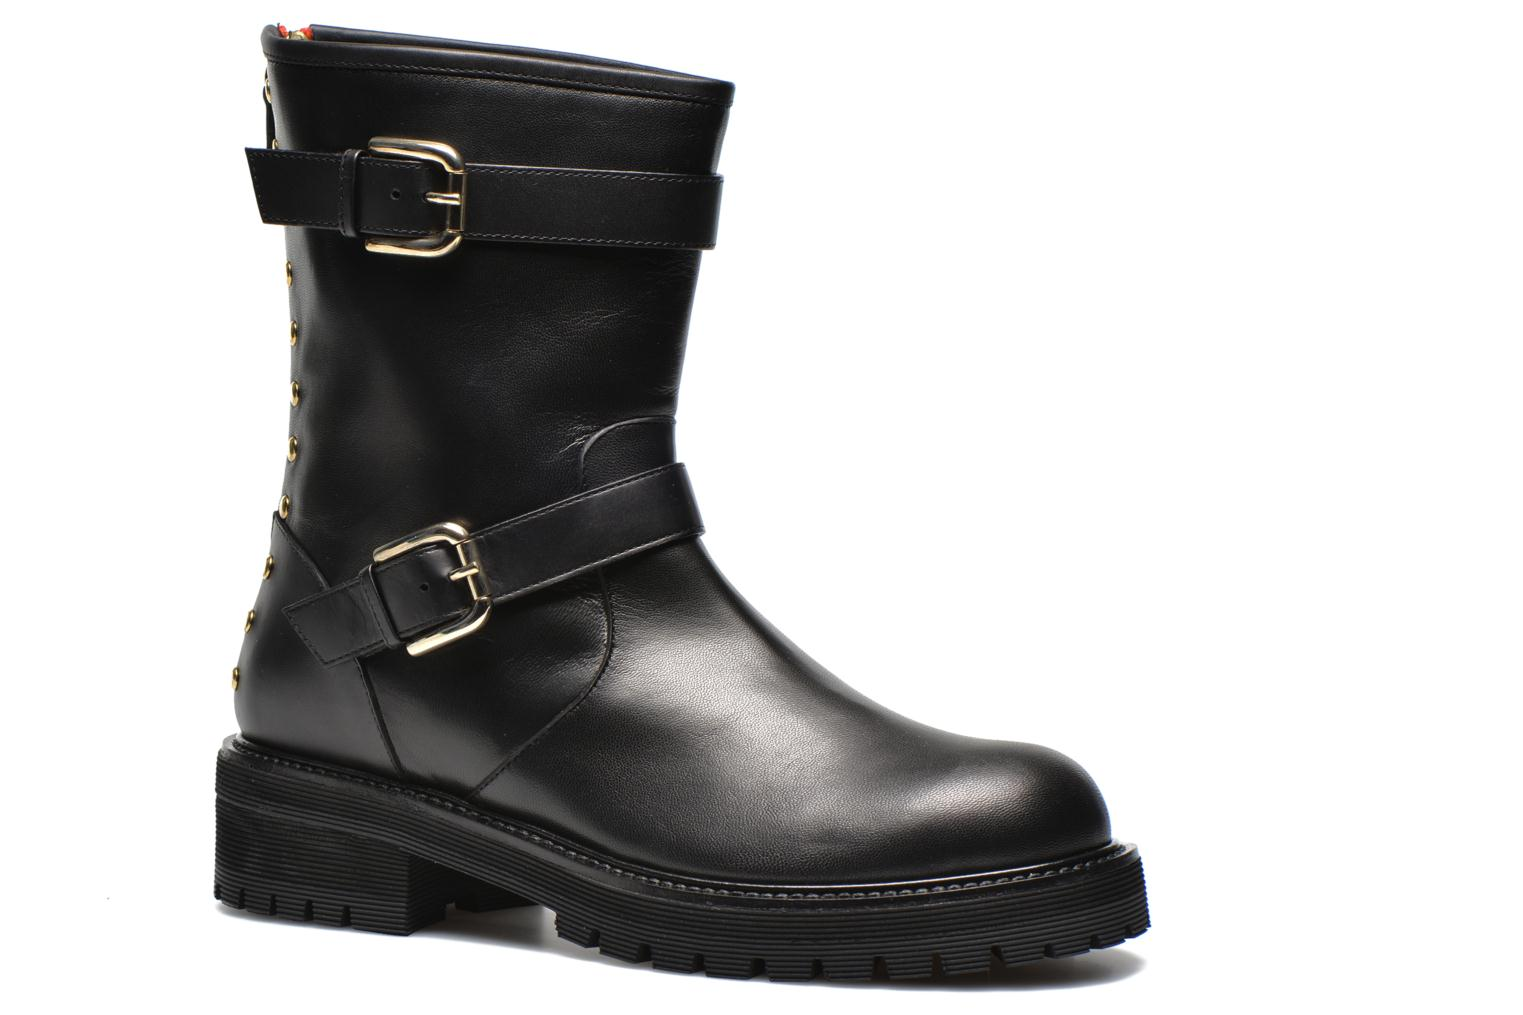 Boots en enkellaarsjes Bottines biker by Vicini